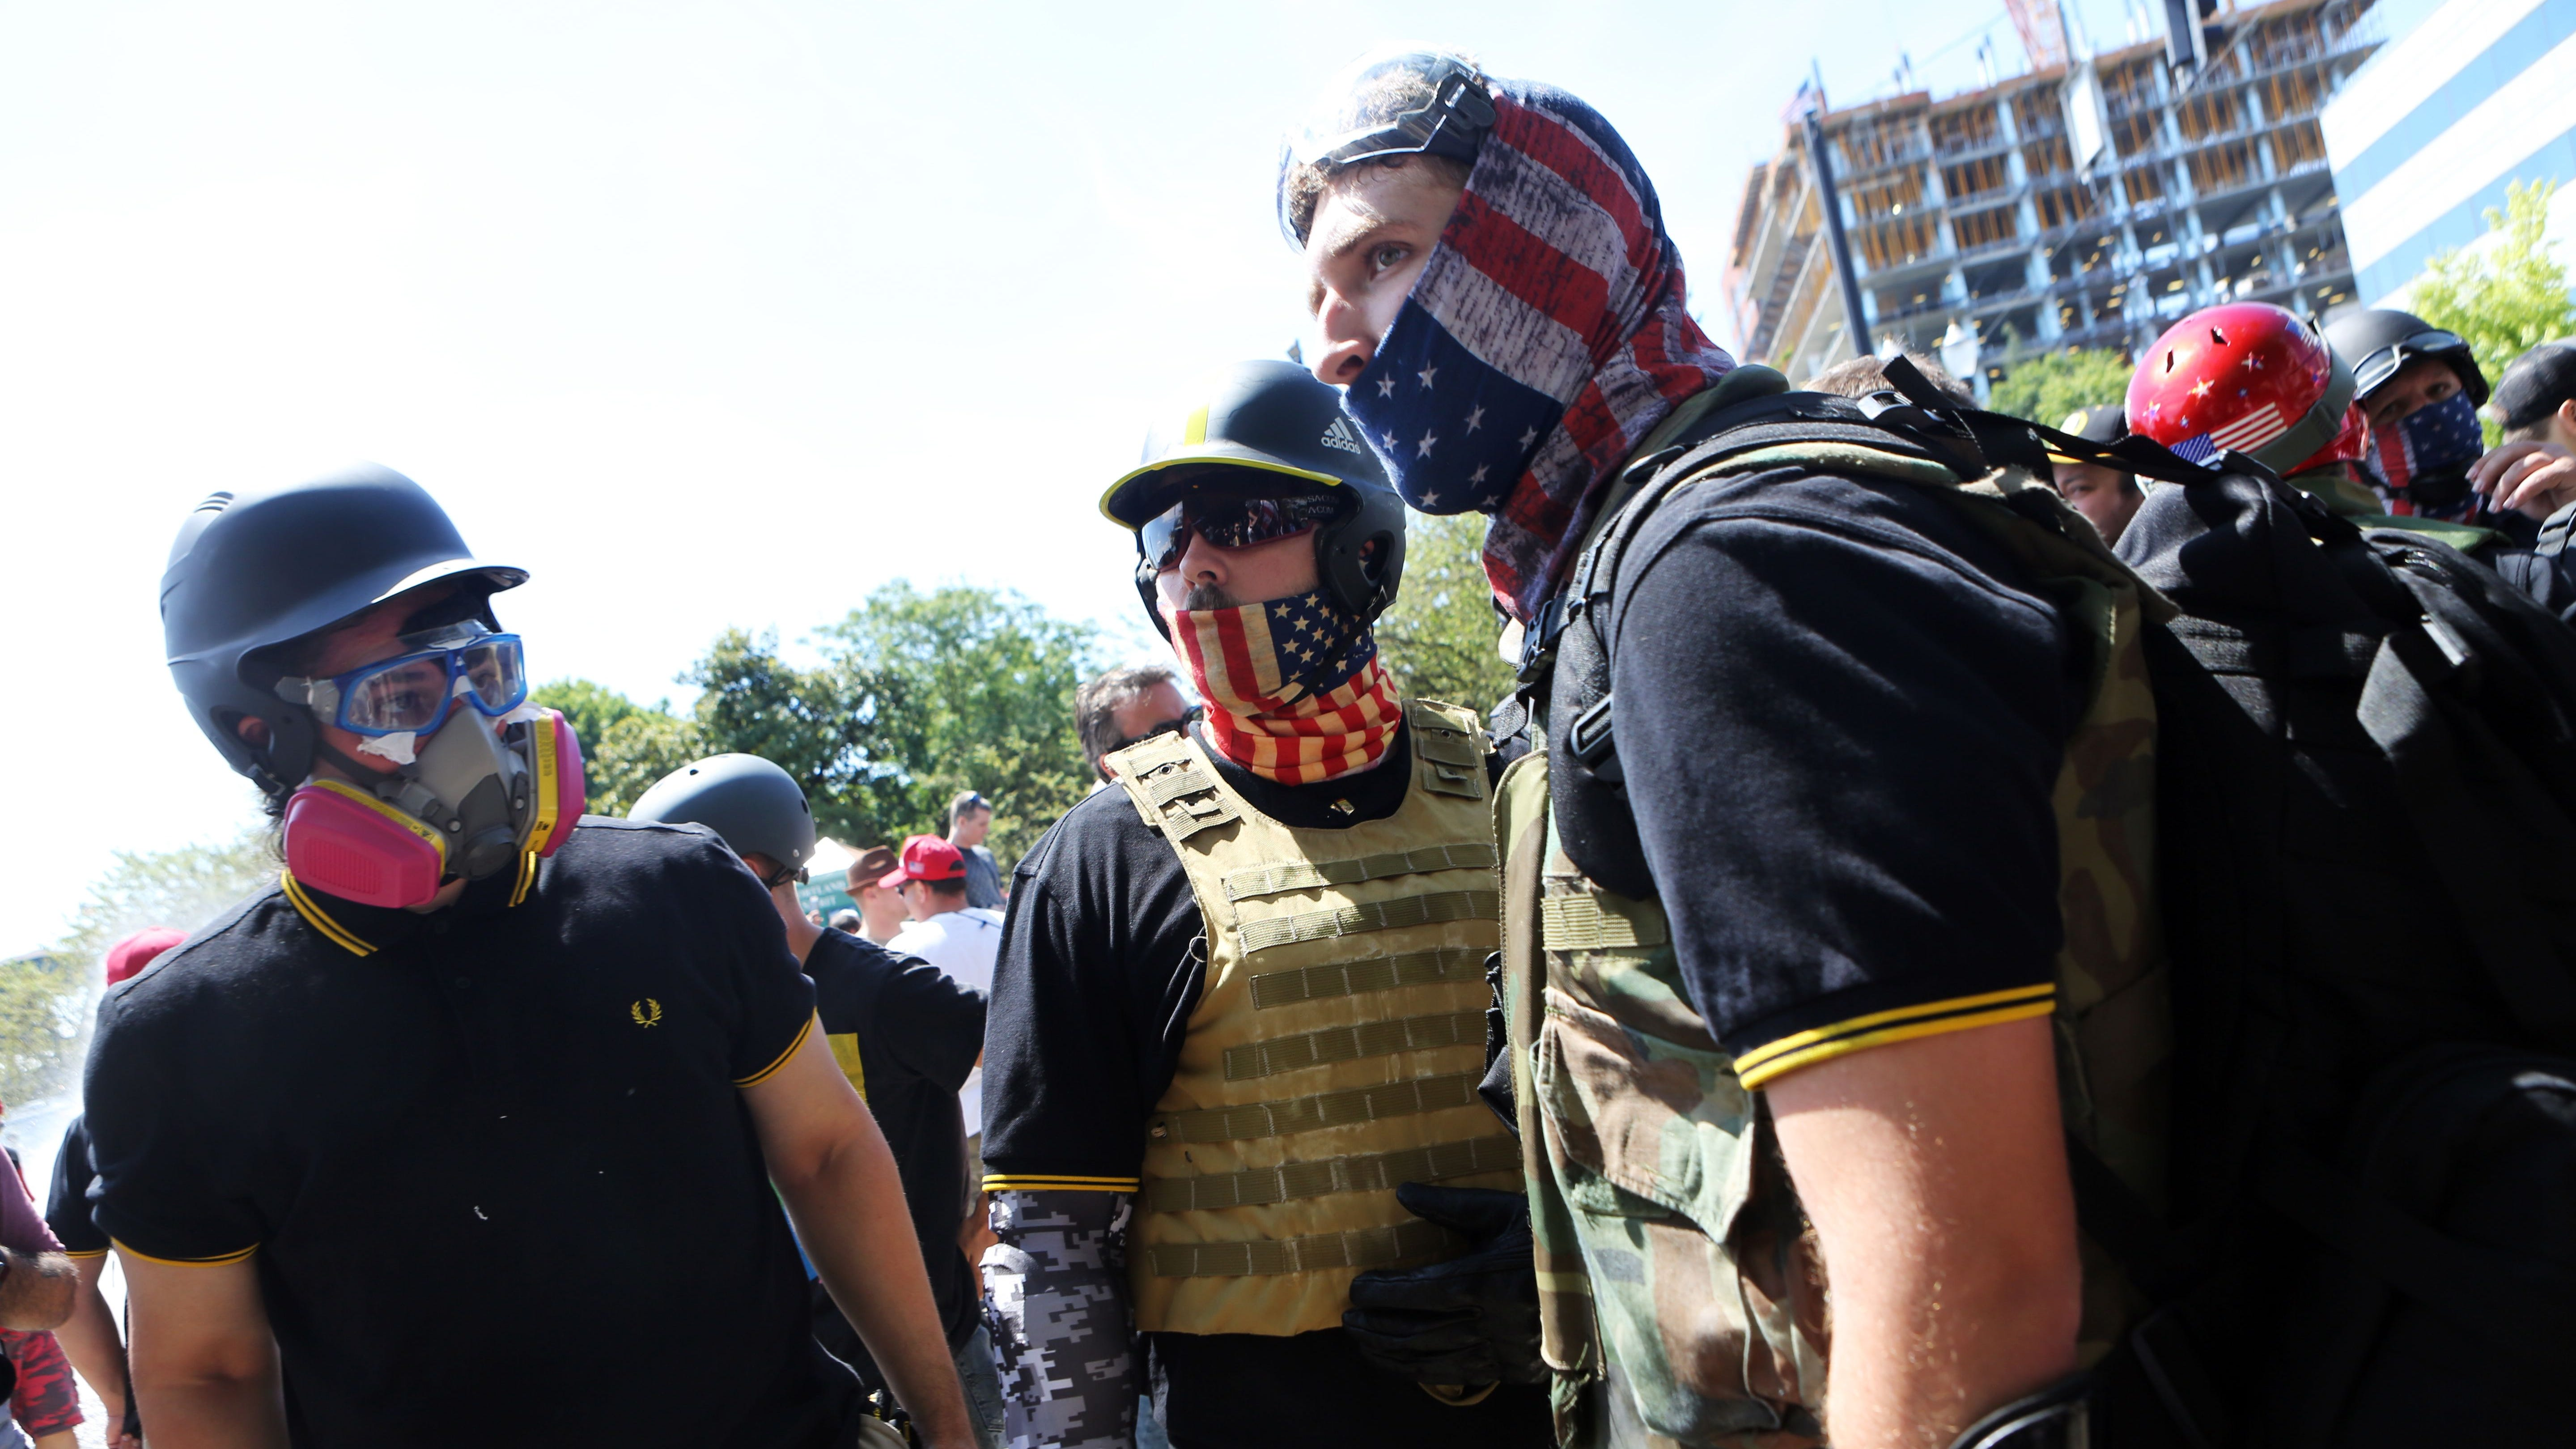 """Opposing Alt-right activists, anti-fascist protestors, and people on all sides of the political spectrum gather for a campaign rally organized by right-wing organizer, Patriot Prayer founder and Republican Senate candidate Joey Gibson in Portland, Oregon, August 4, 2018. Police in Portland braced for violence at the rally that has raised fears of a replay of last year's deadly """"Unite the Right"""" protests in Charlottesville, Virginia. Patriot Prayer and the Proud Boys, right-wing groups linked to violence at a previous Portland rally, planned to march in the city's Tom McCall Waterfront Park in support of Patriot Prayer founder Joey Gibson, who is running as a Republican for the US Senate. Meanwhile, a group called Popular Mobilization is organizing a counter-demonstration at the park, accompanied by a marching band and protesters in clown costumes. / AFP PHOTO / Thomas PattersonTHOMAS PATTERSON/AFP/Getty Images ORG XMIT: Fears of ORIG FILE ID: AFP_1850X2"""